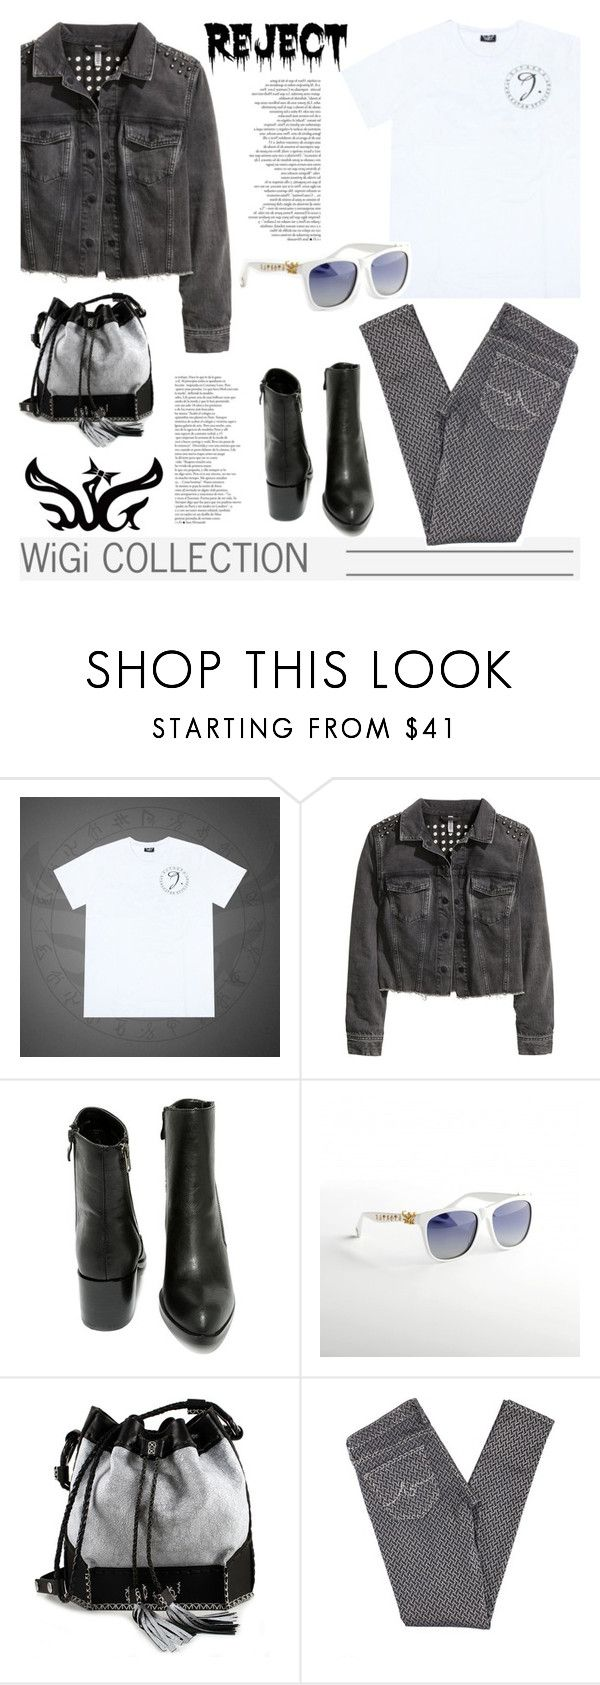 """WiGi J Series Luxury T-shirt"" by wigicollection ❤ liked on Polyvore featuring H&M, Very Volatile, Carianne Moore, AG Adriano Goldschmied, glasses, whitetshirt, wigicollection and explorecollection"